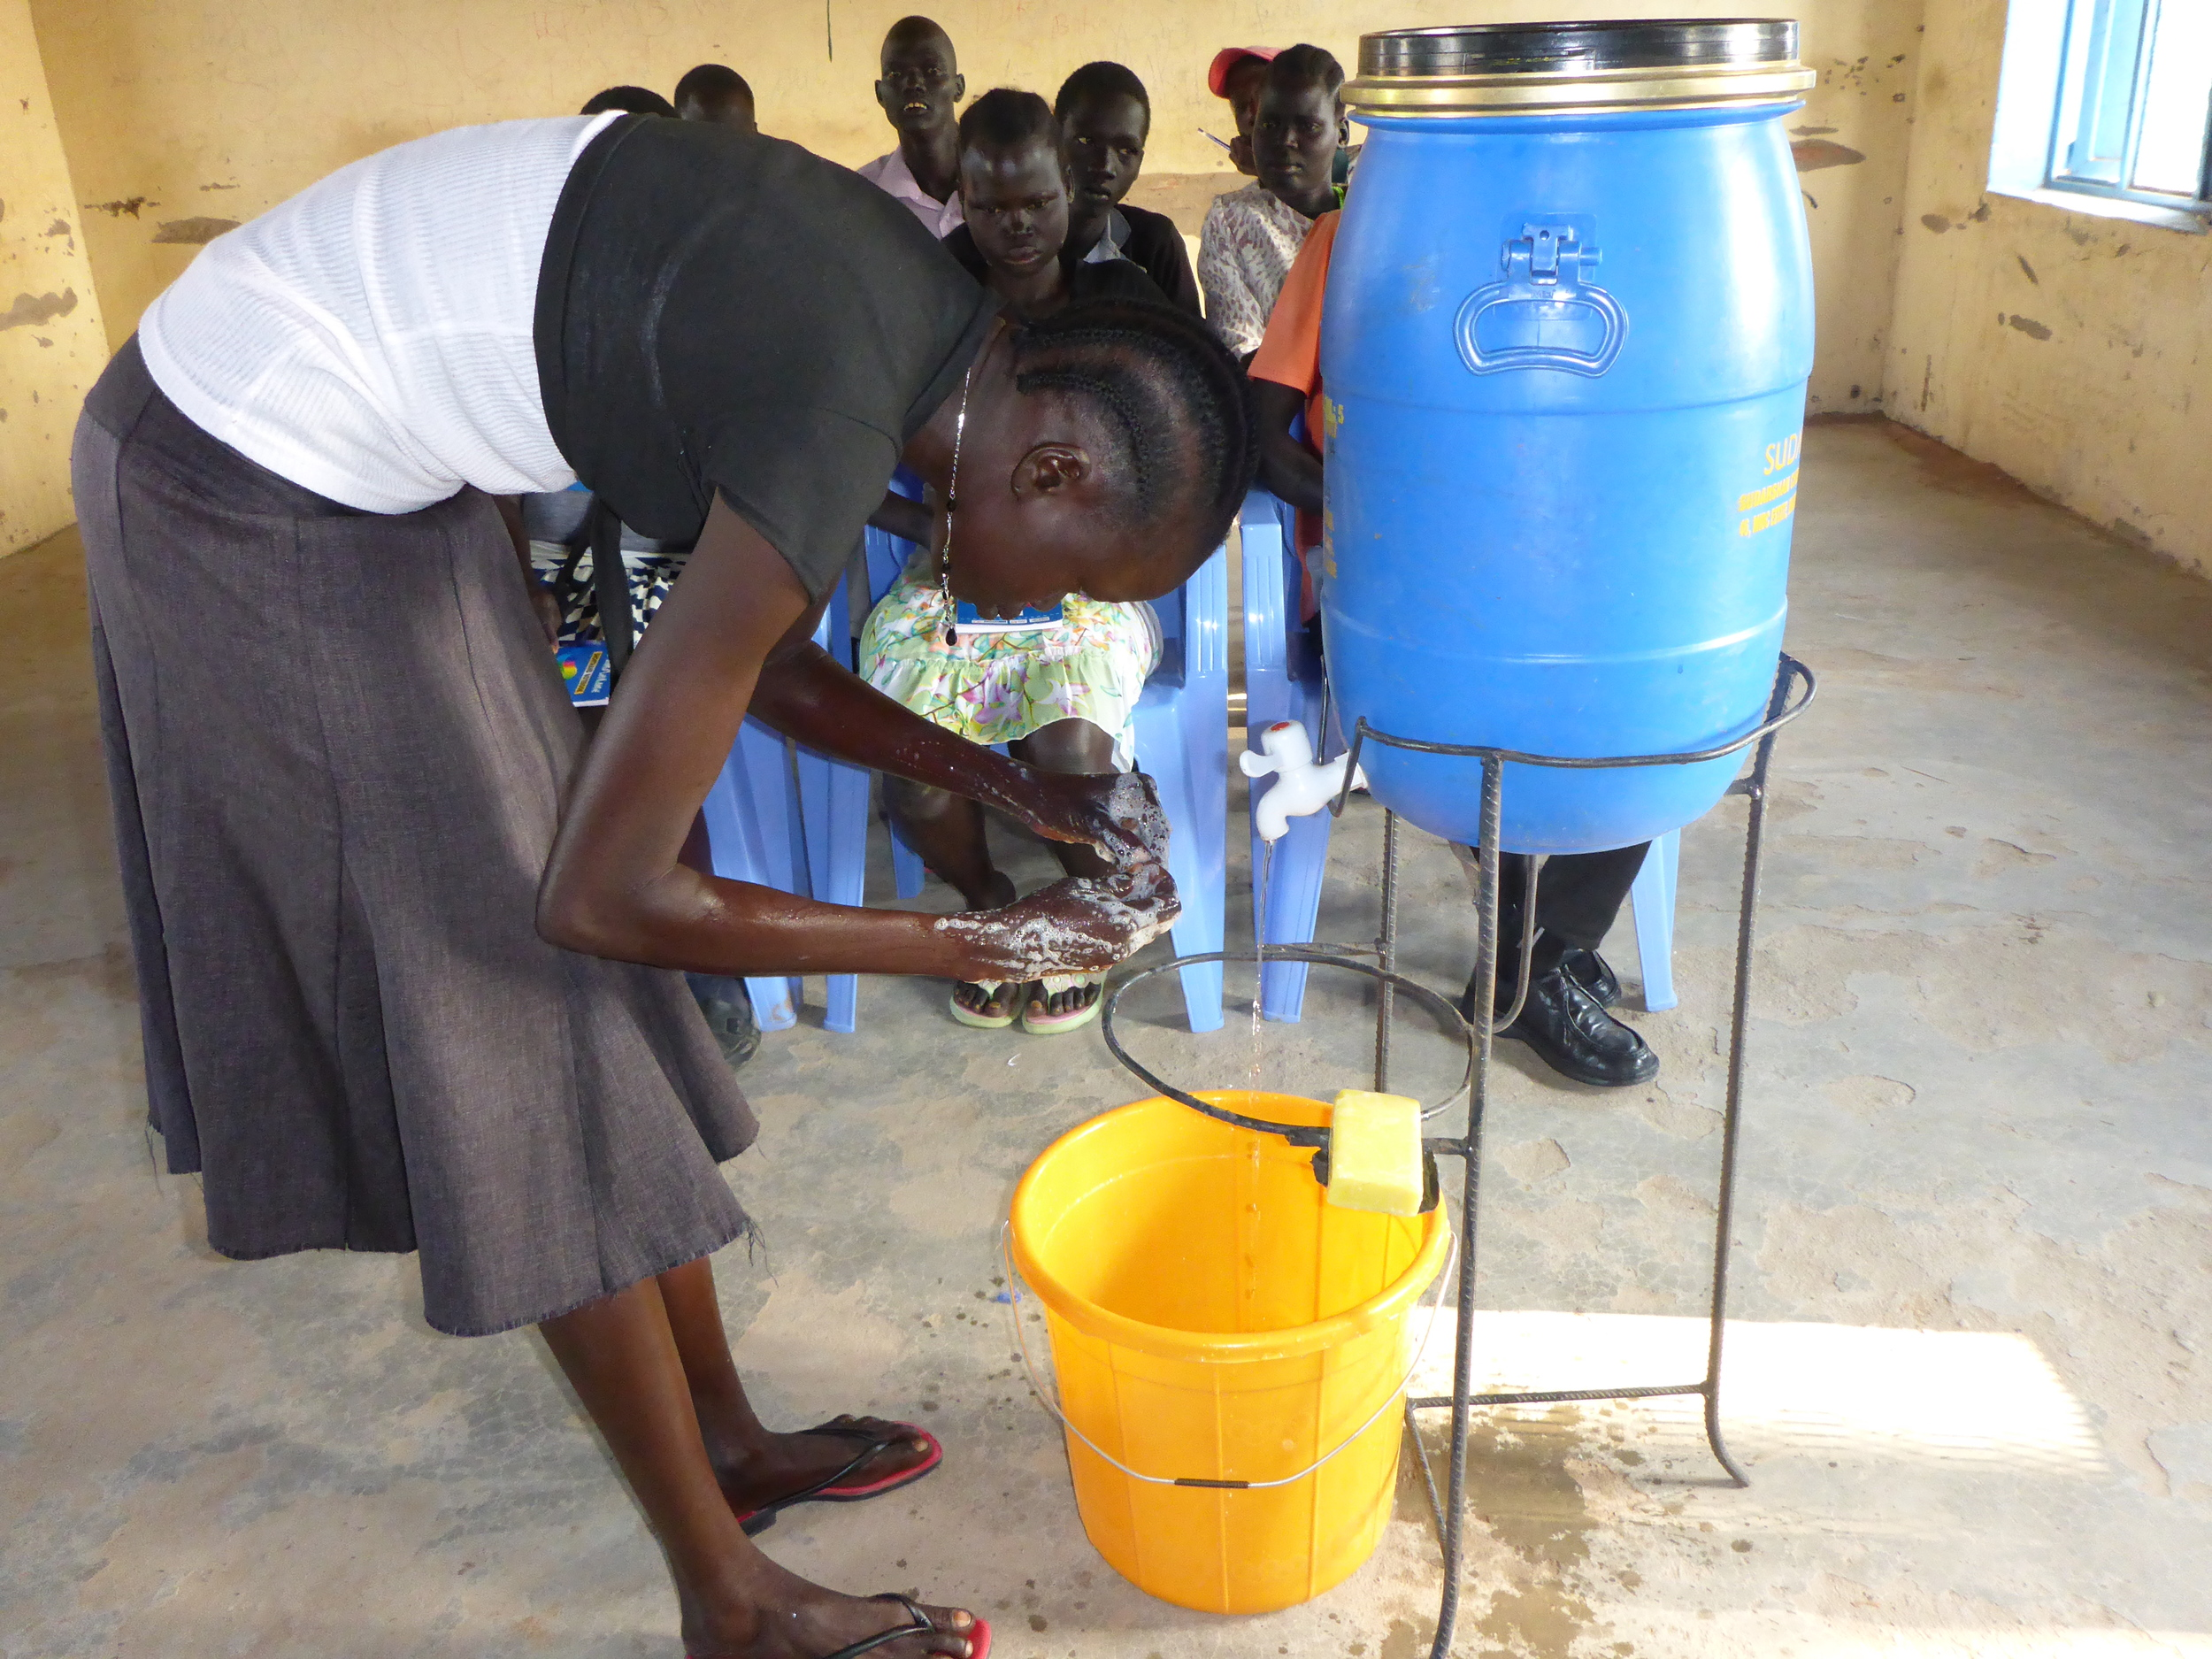 Hygiene education includes hand-washing demonstrations